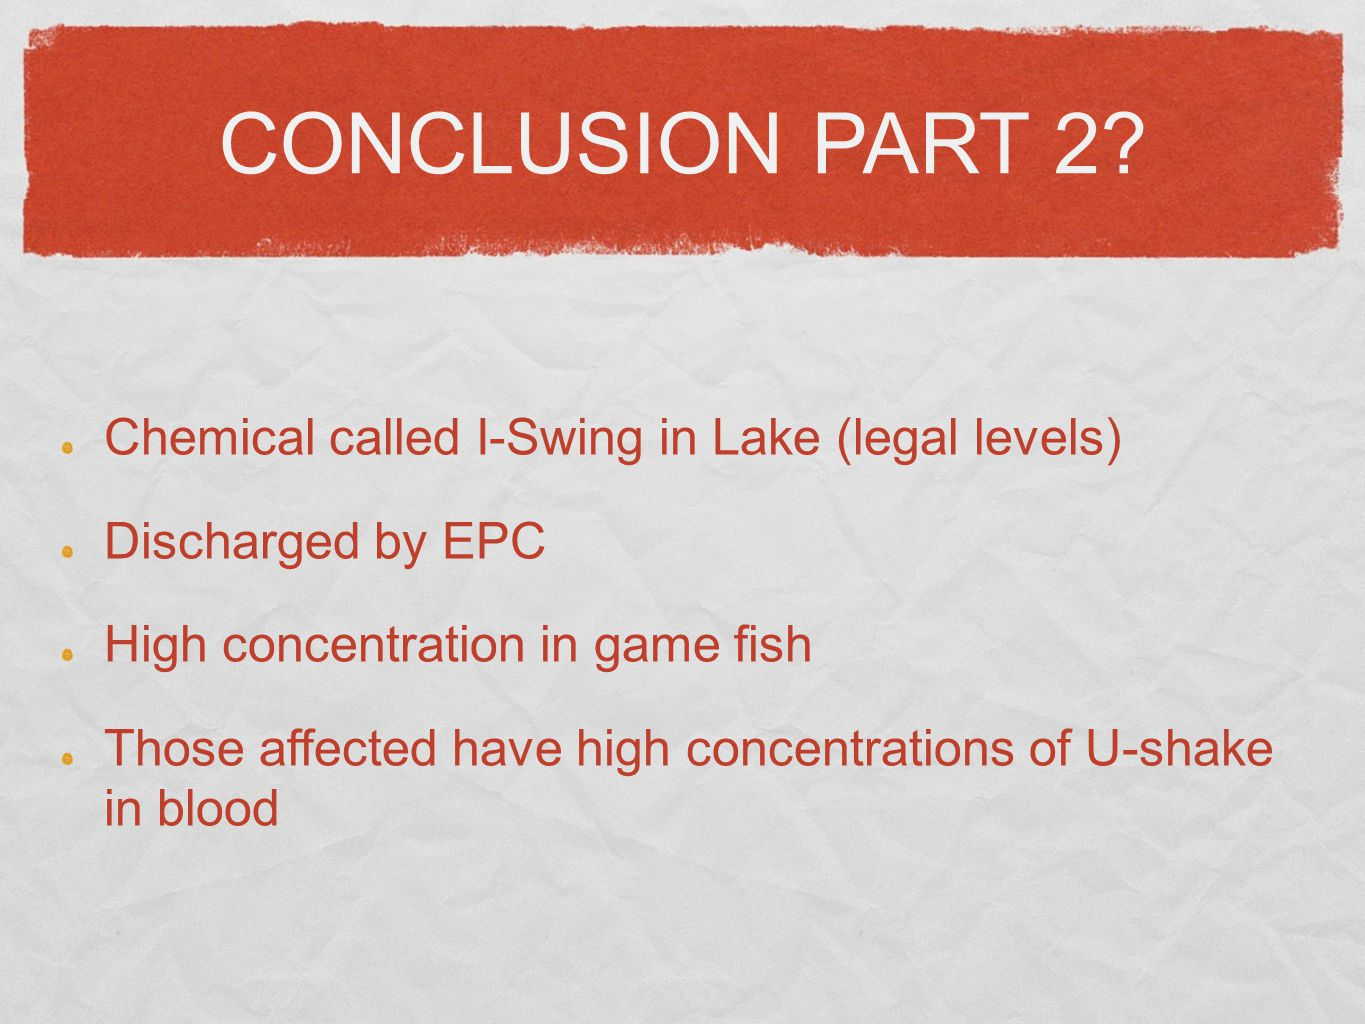 CONCLUSION PART 2? Chemical called I-Swing in Lake (legal levels) Discharged by EPC High concentration in game fish Those affected have high concentra